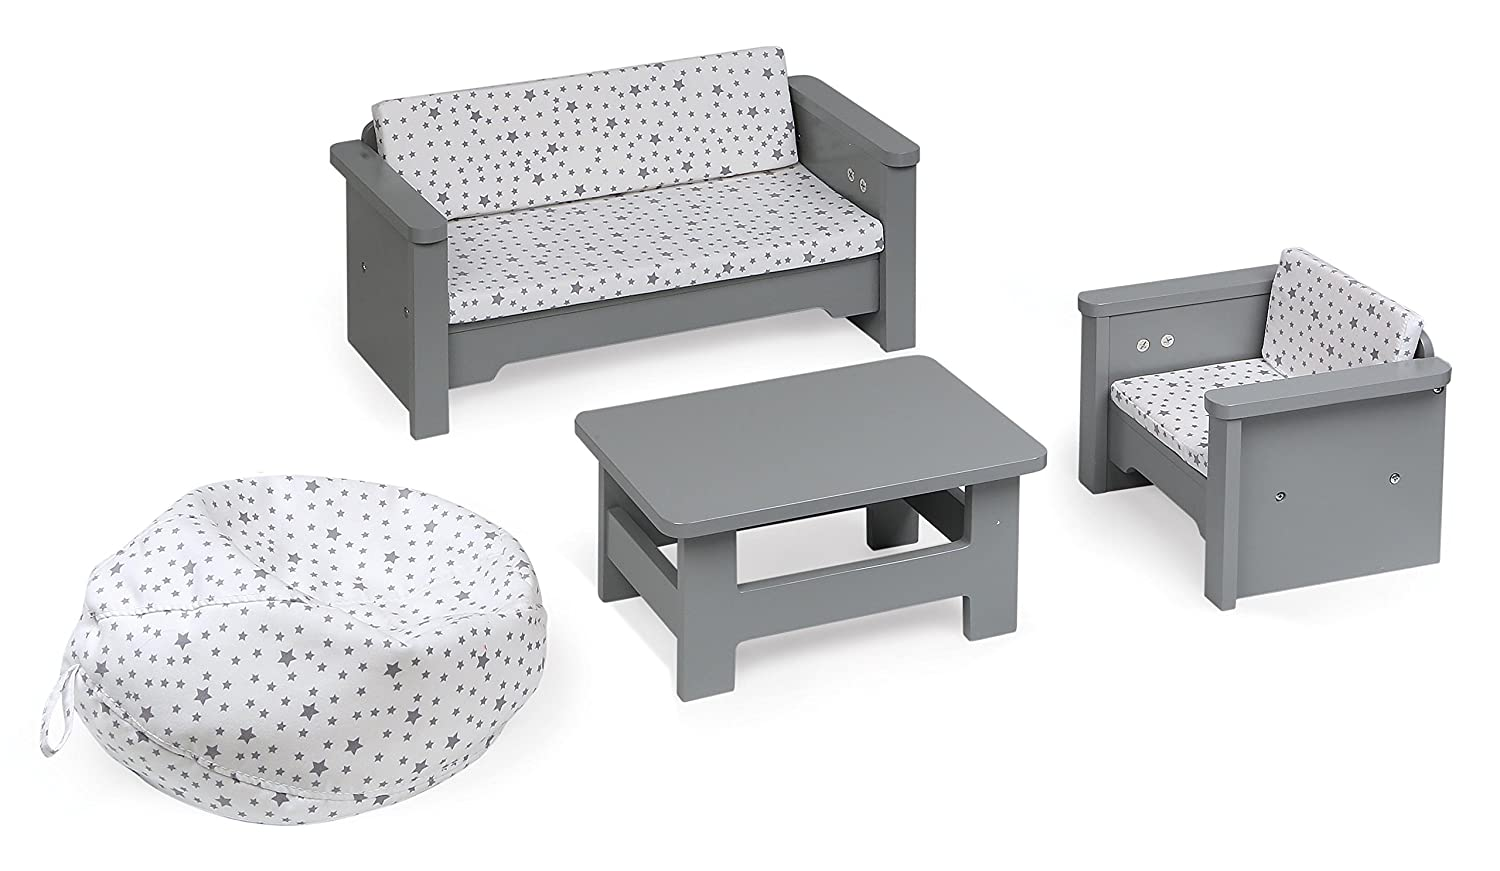 Wondrous Badger Basket 6 Piece Living Room Furniture Play Set For 18 Inch Fits American Girl Dolls Gray White Machost Co Dining Chair Design Ideas Machostcouk